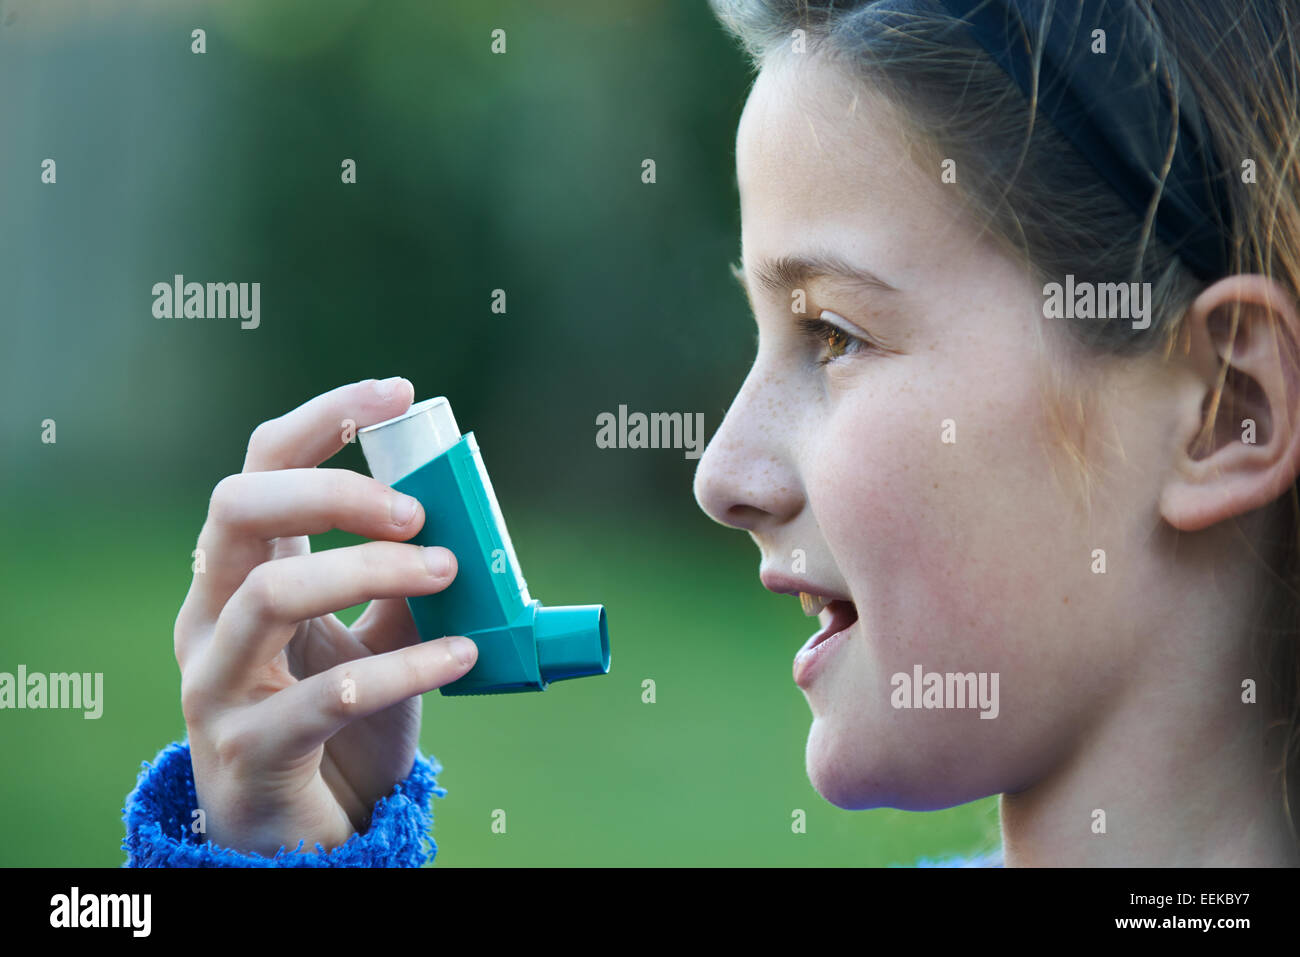 Girl Using Inhaler To Treat Asthma Attack - Stock Image